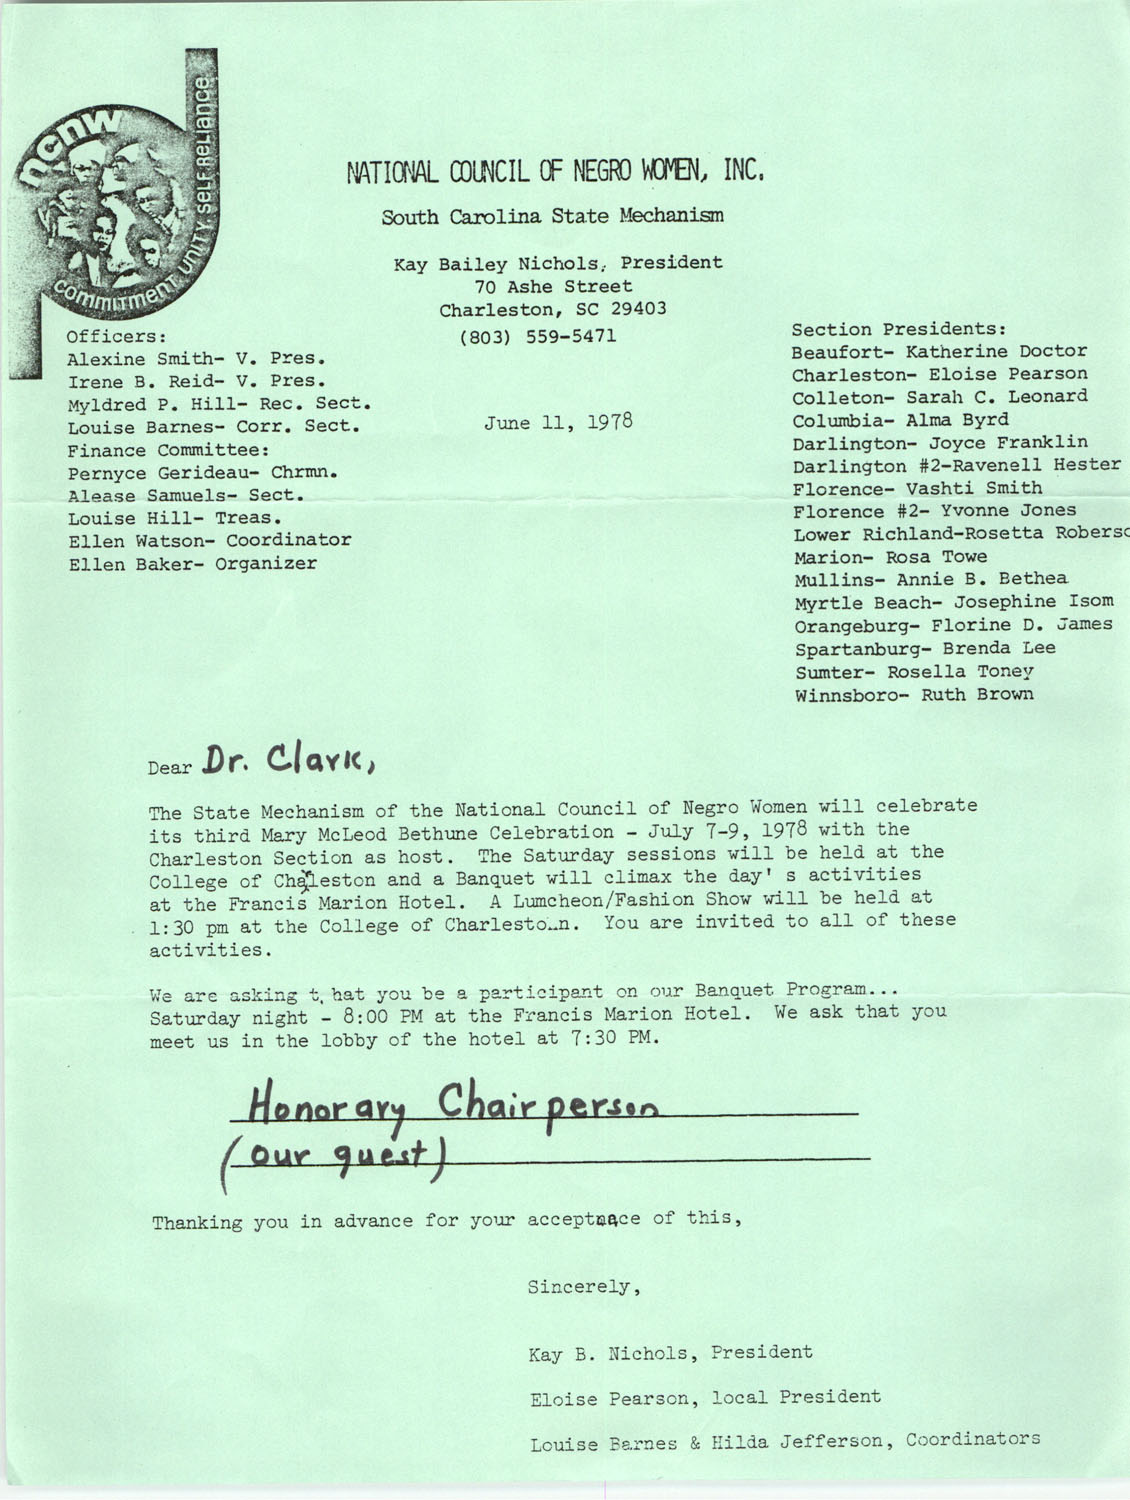 Letter from Kay B. Nichols to Septima P. Clark, June 11, 1978